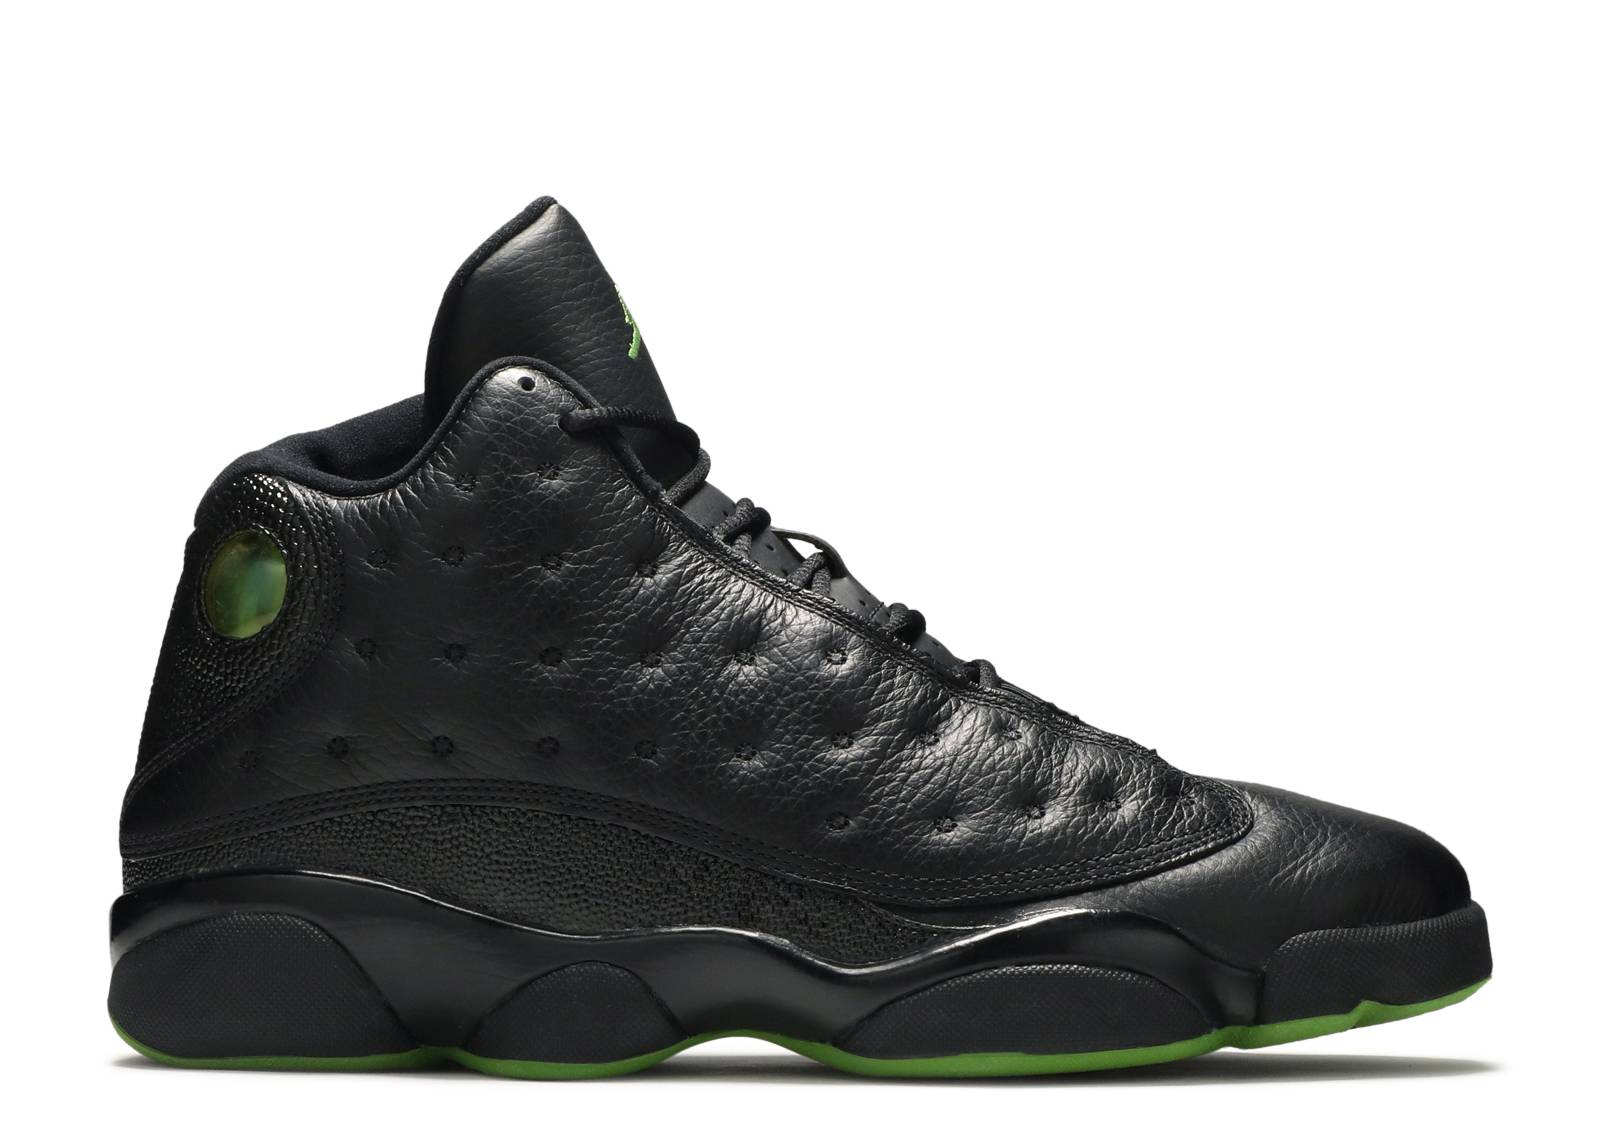 check out 33bd3 623c4 Air Jordan Retro 13